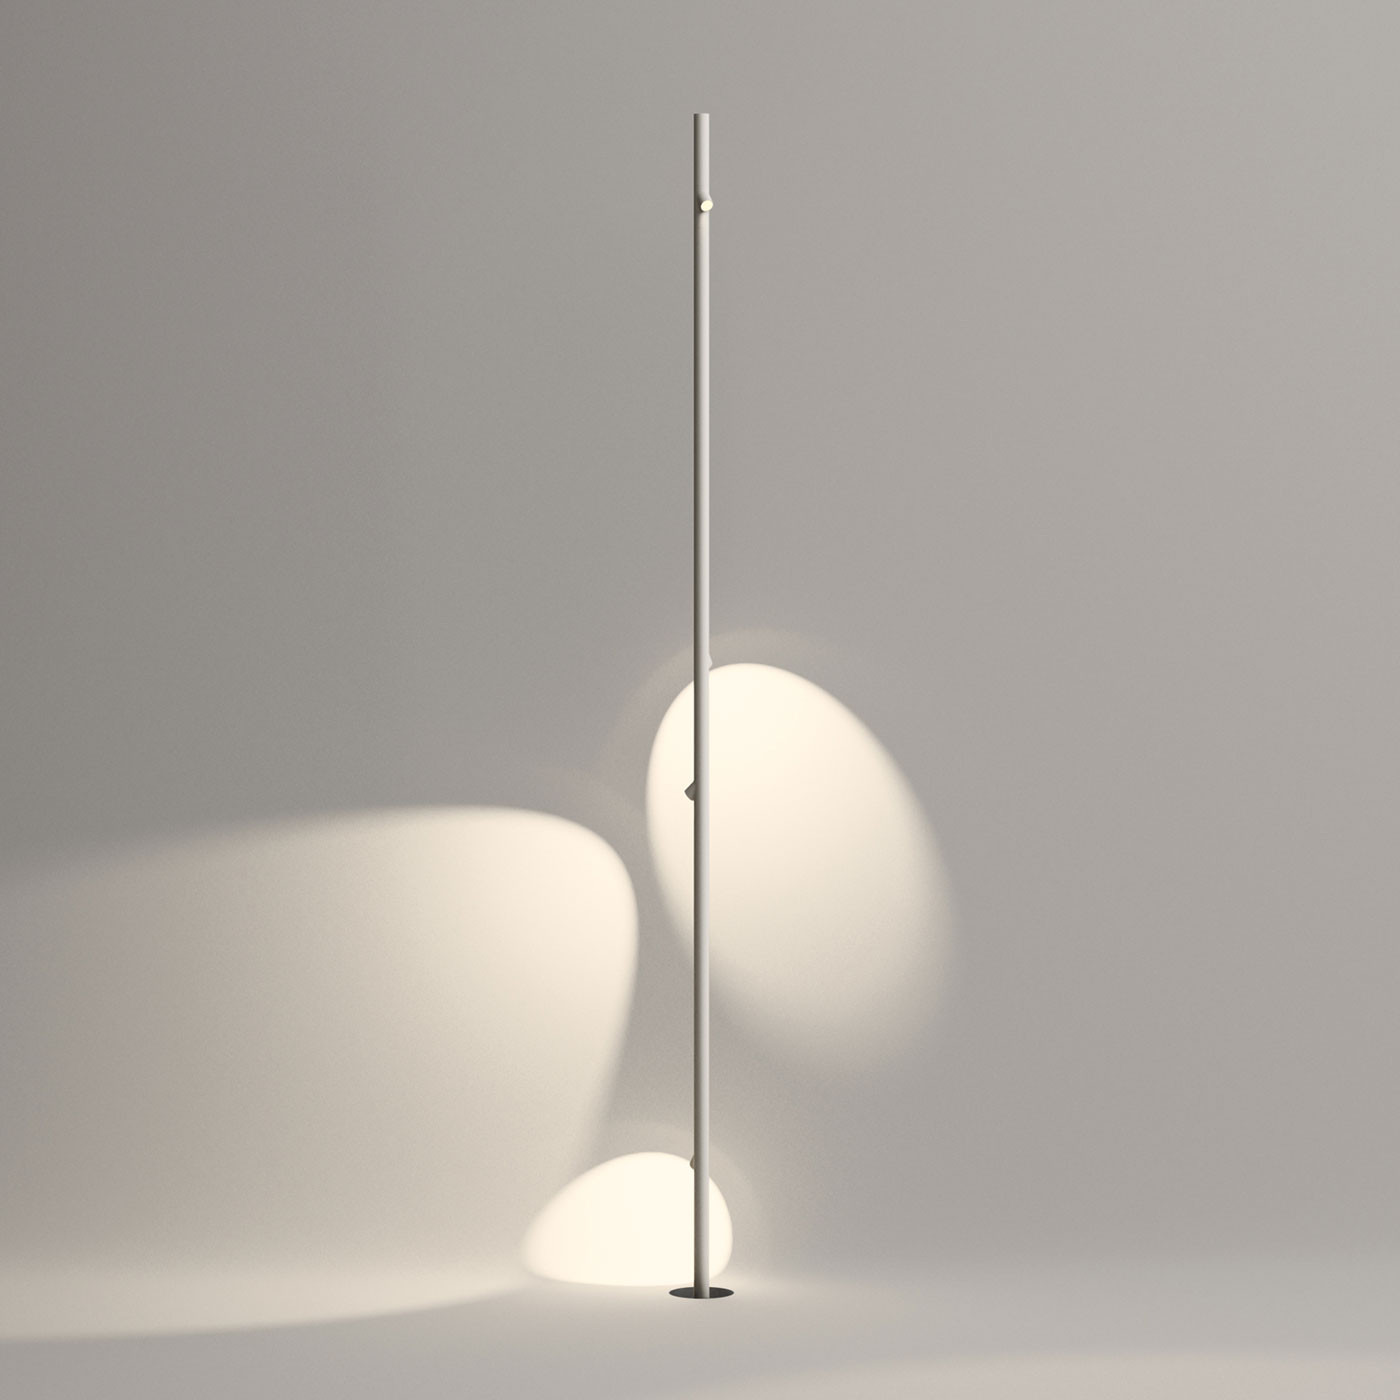 Vibia Bamboo 4805 Floor Lamp With 4 Spotlights